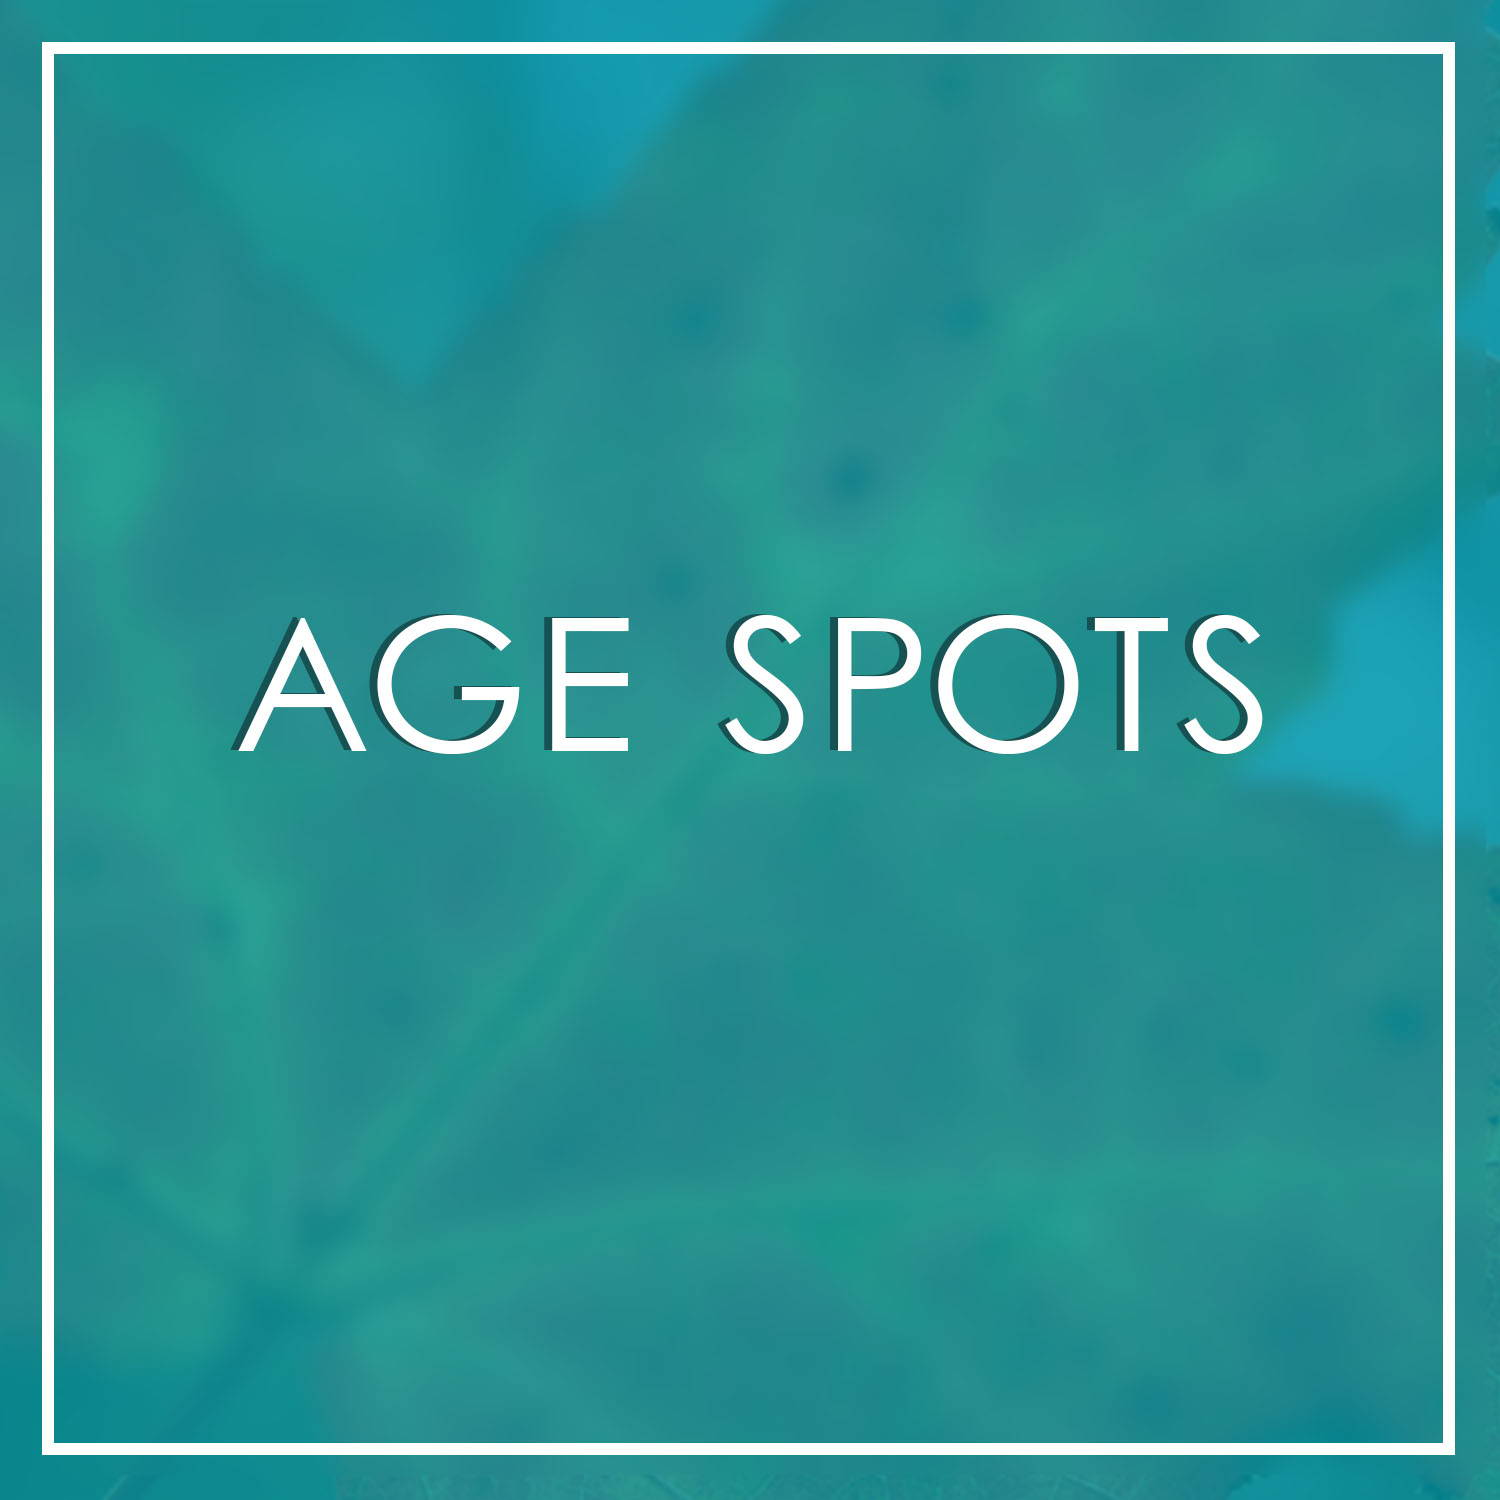 Products for Age Spots